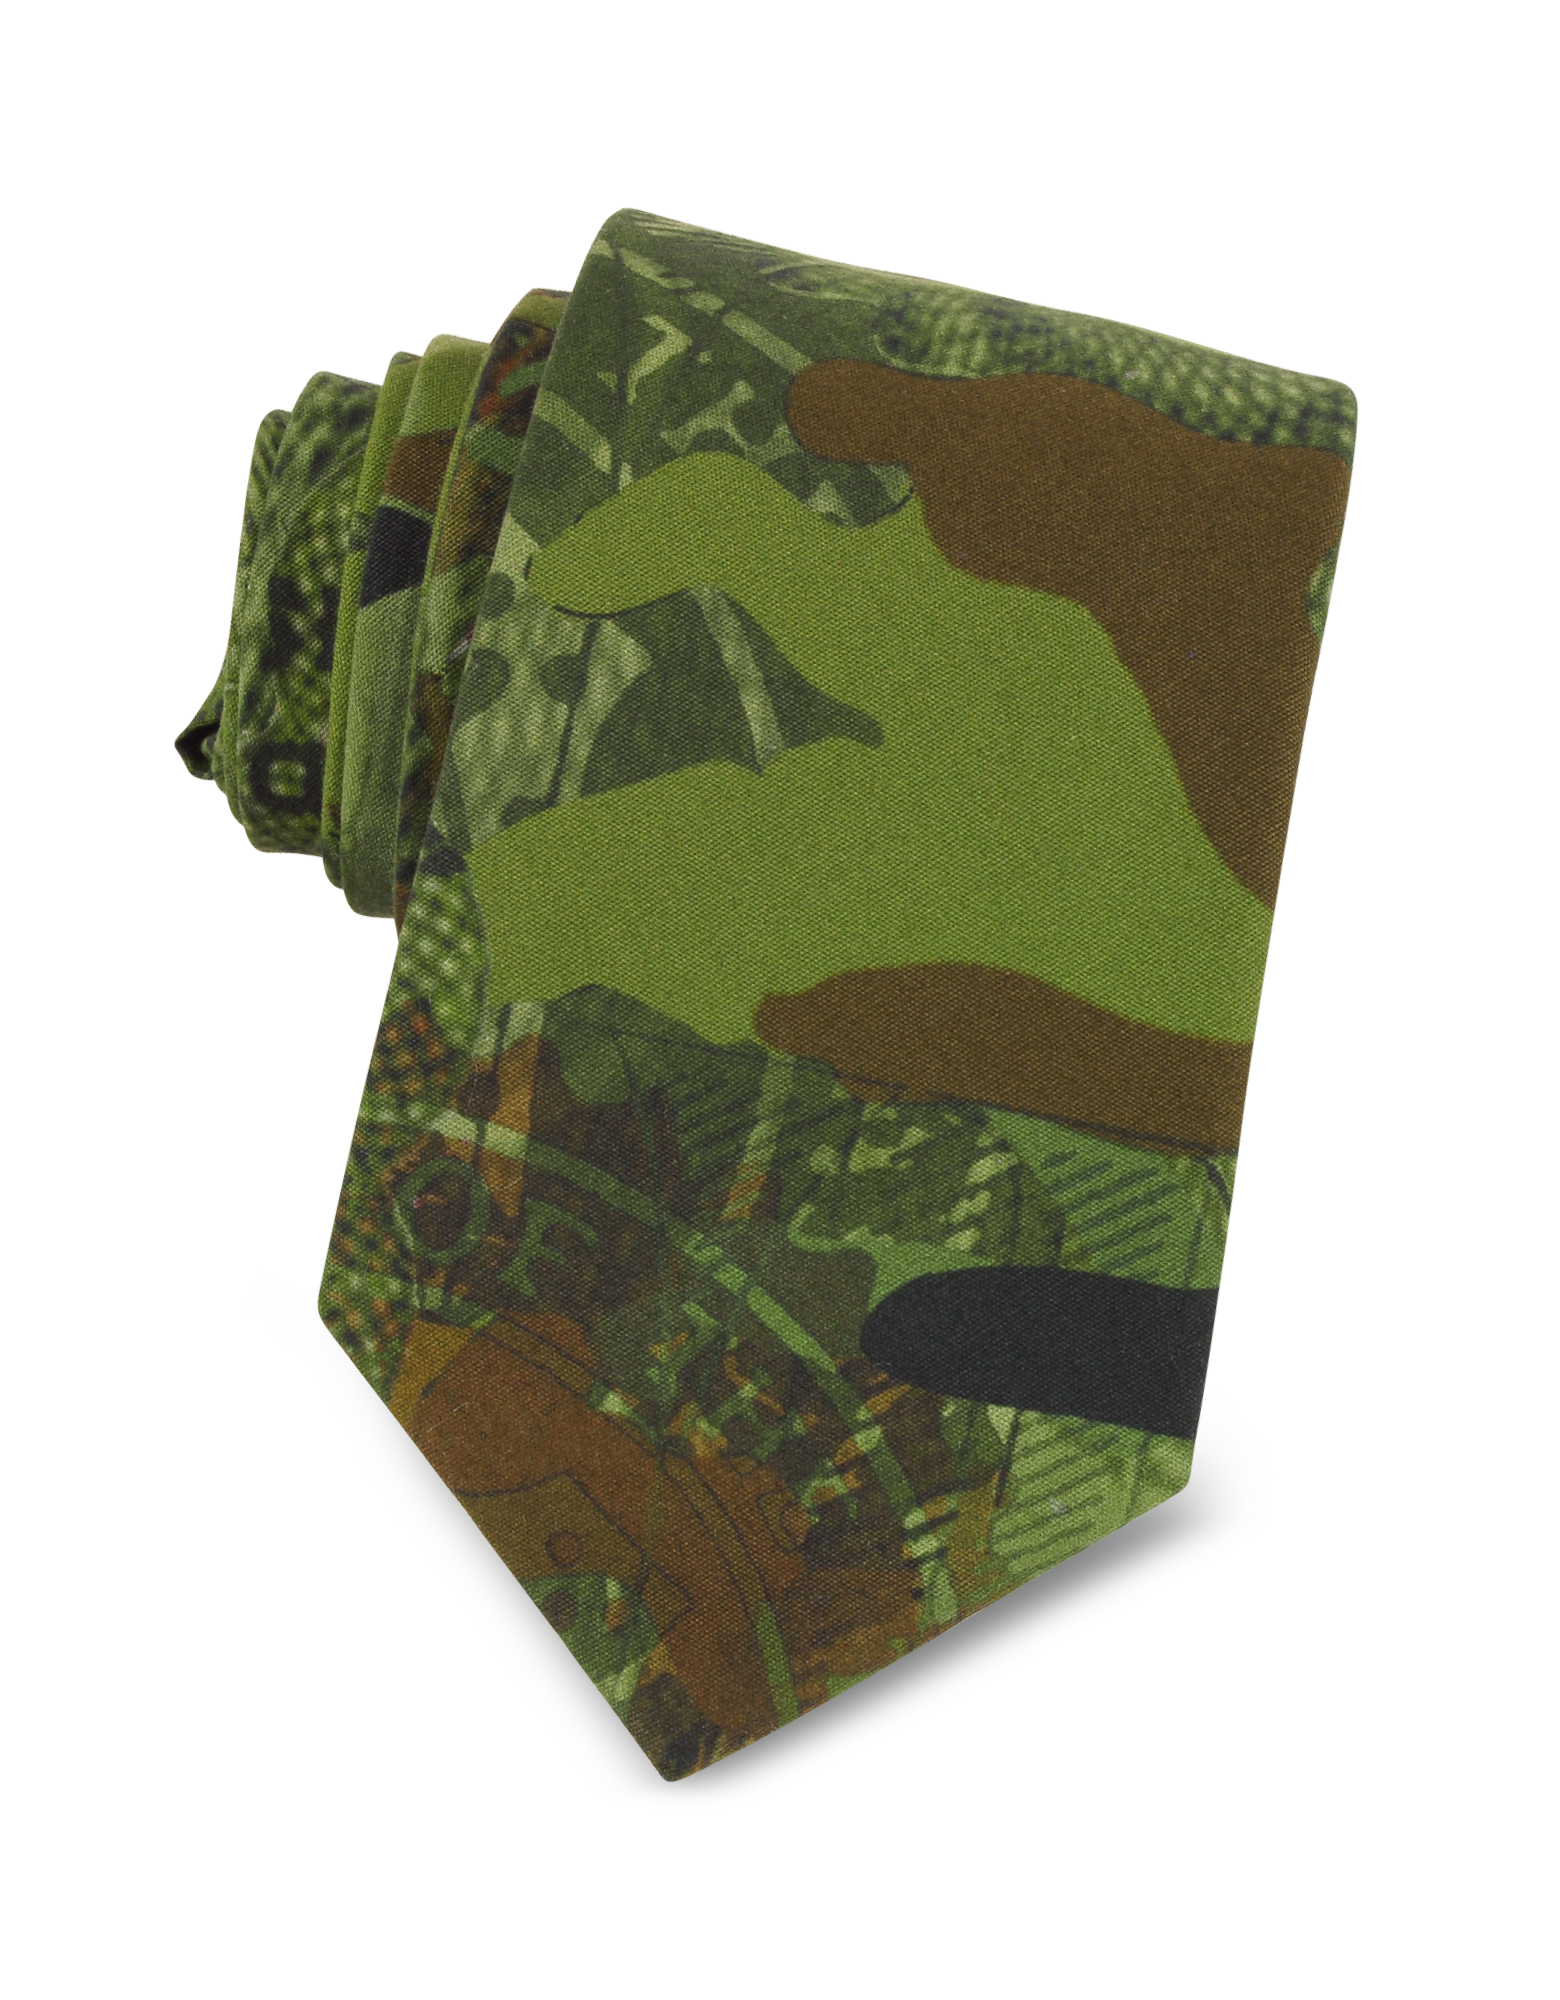 Image of Green Camouflage and Money Printed Cotton Narrow Tie